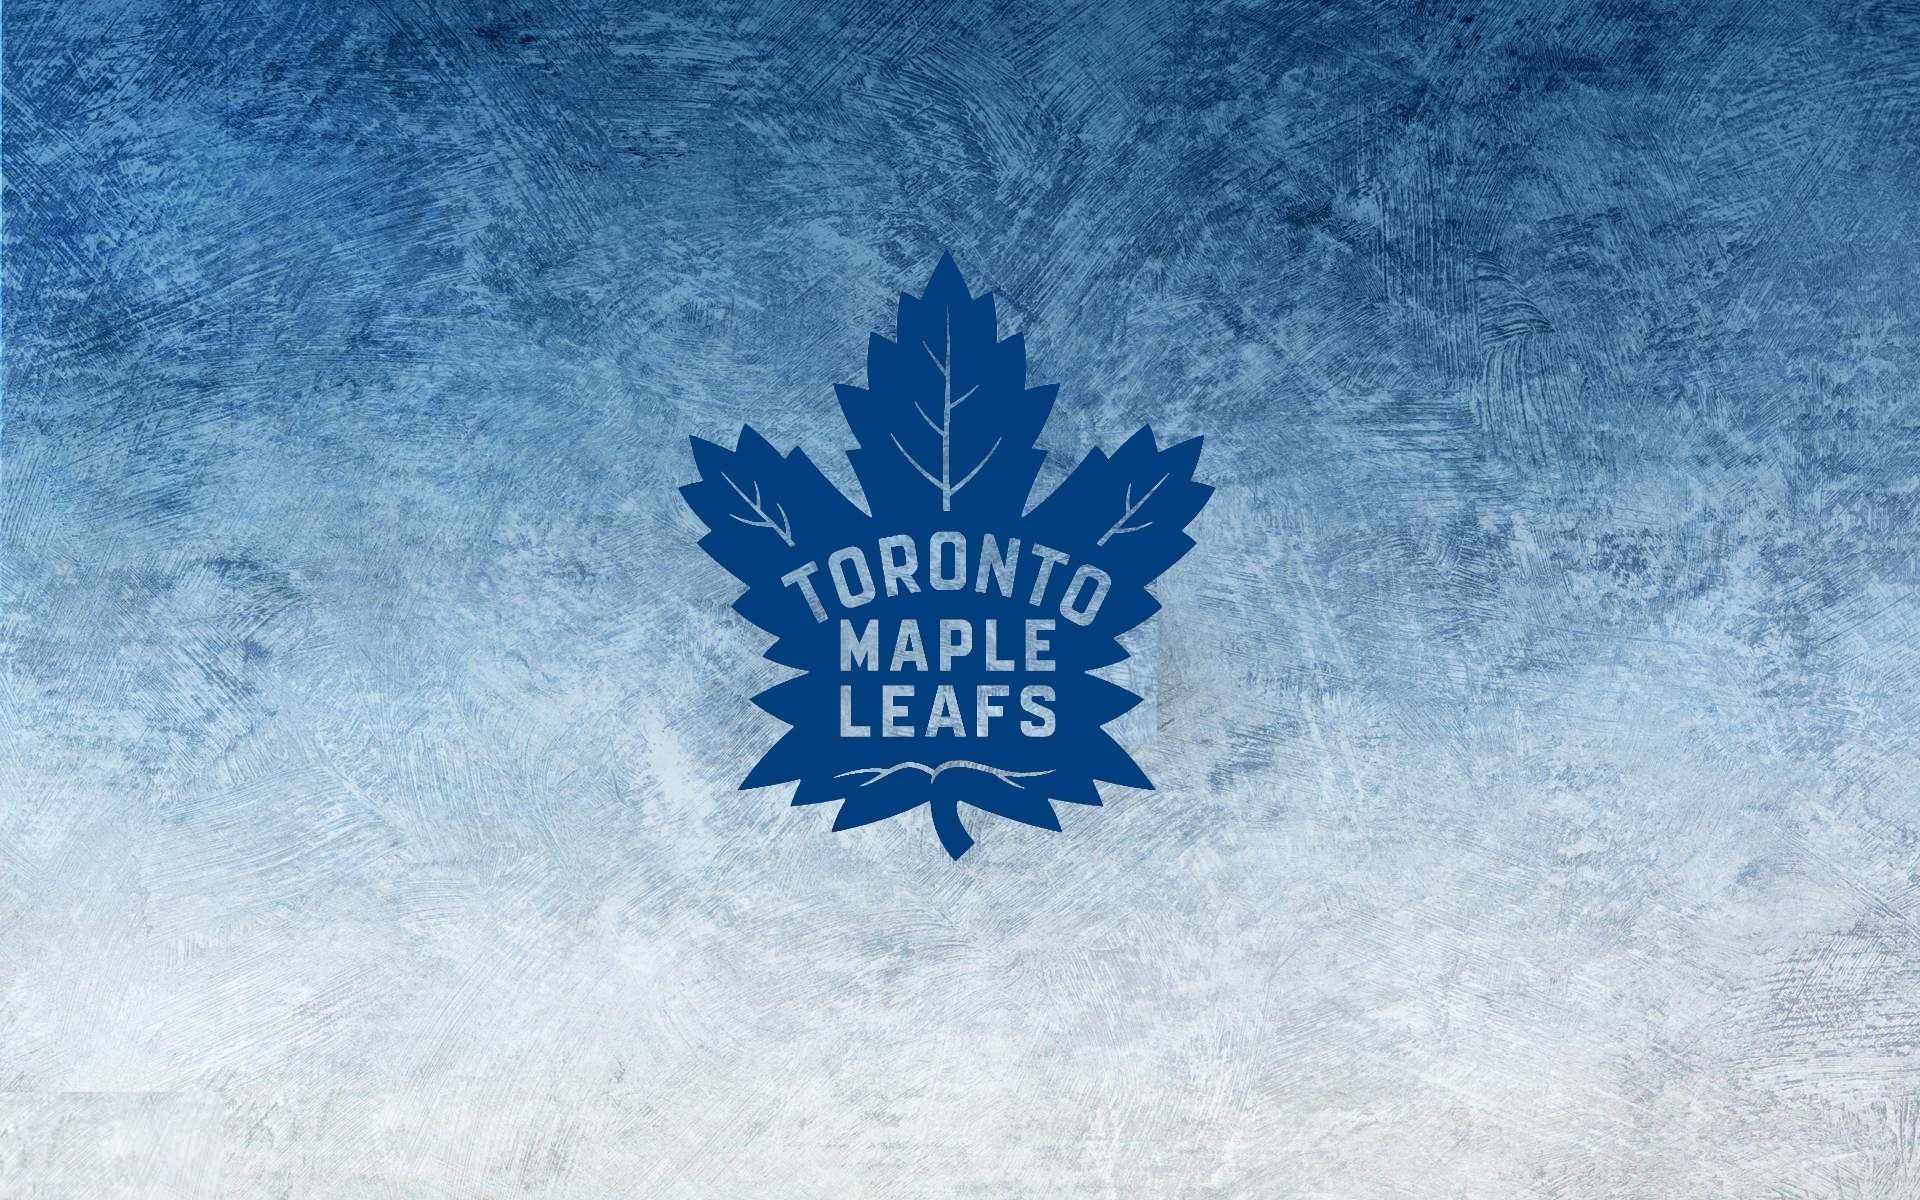 Toronto Maple Leafs Wallpaper 2018 63 Images